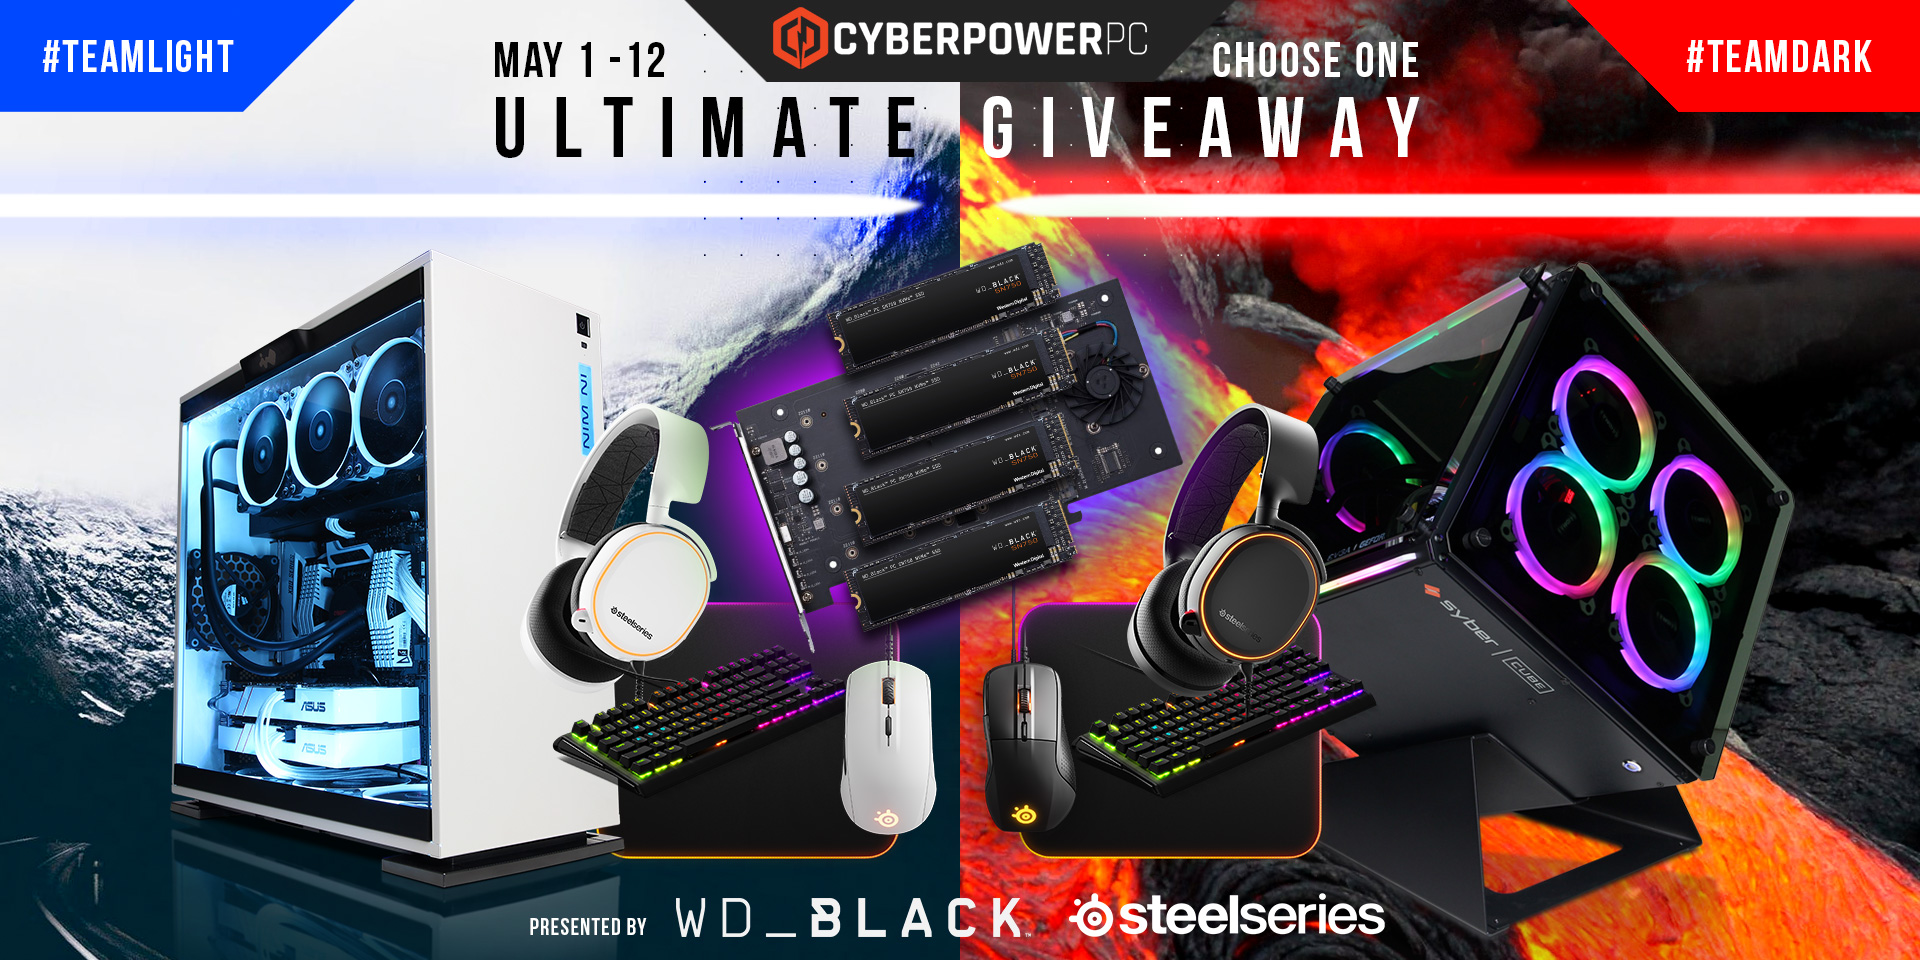 89e0b86604d34 WD Black and CyberPower PC Ultimate Giveaway image